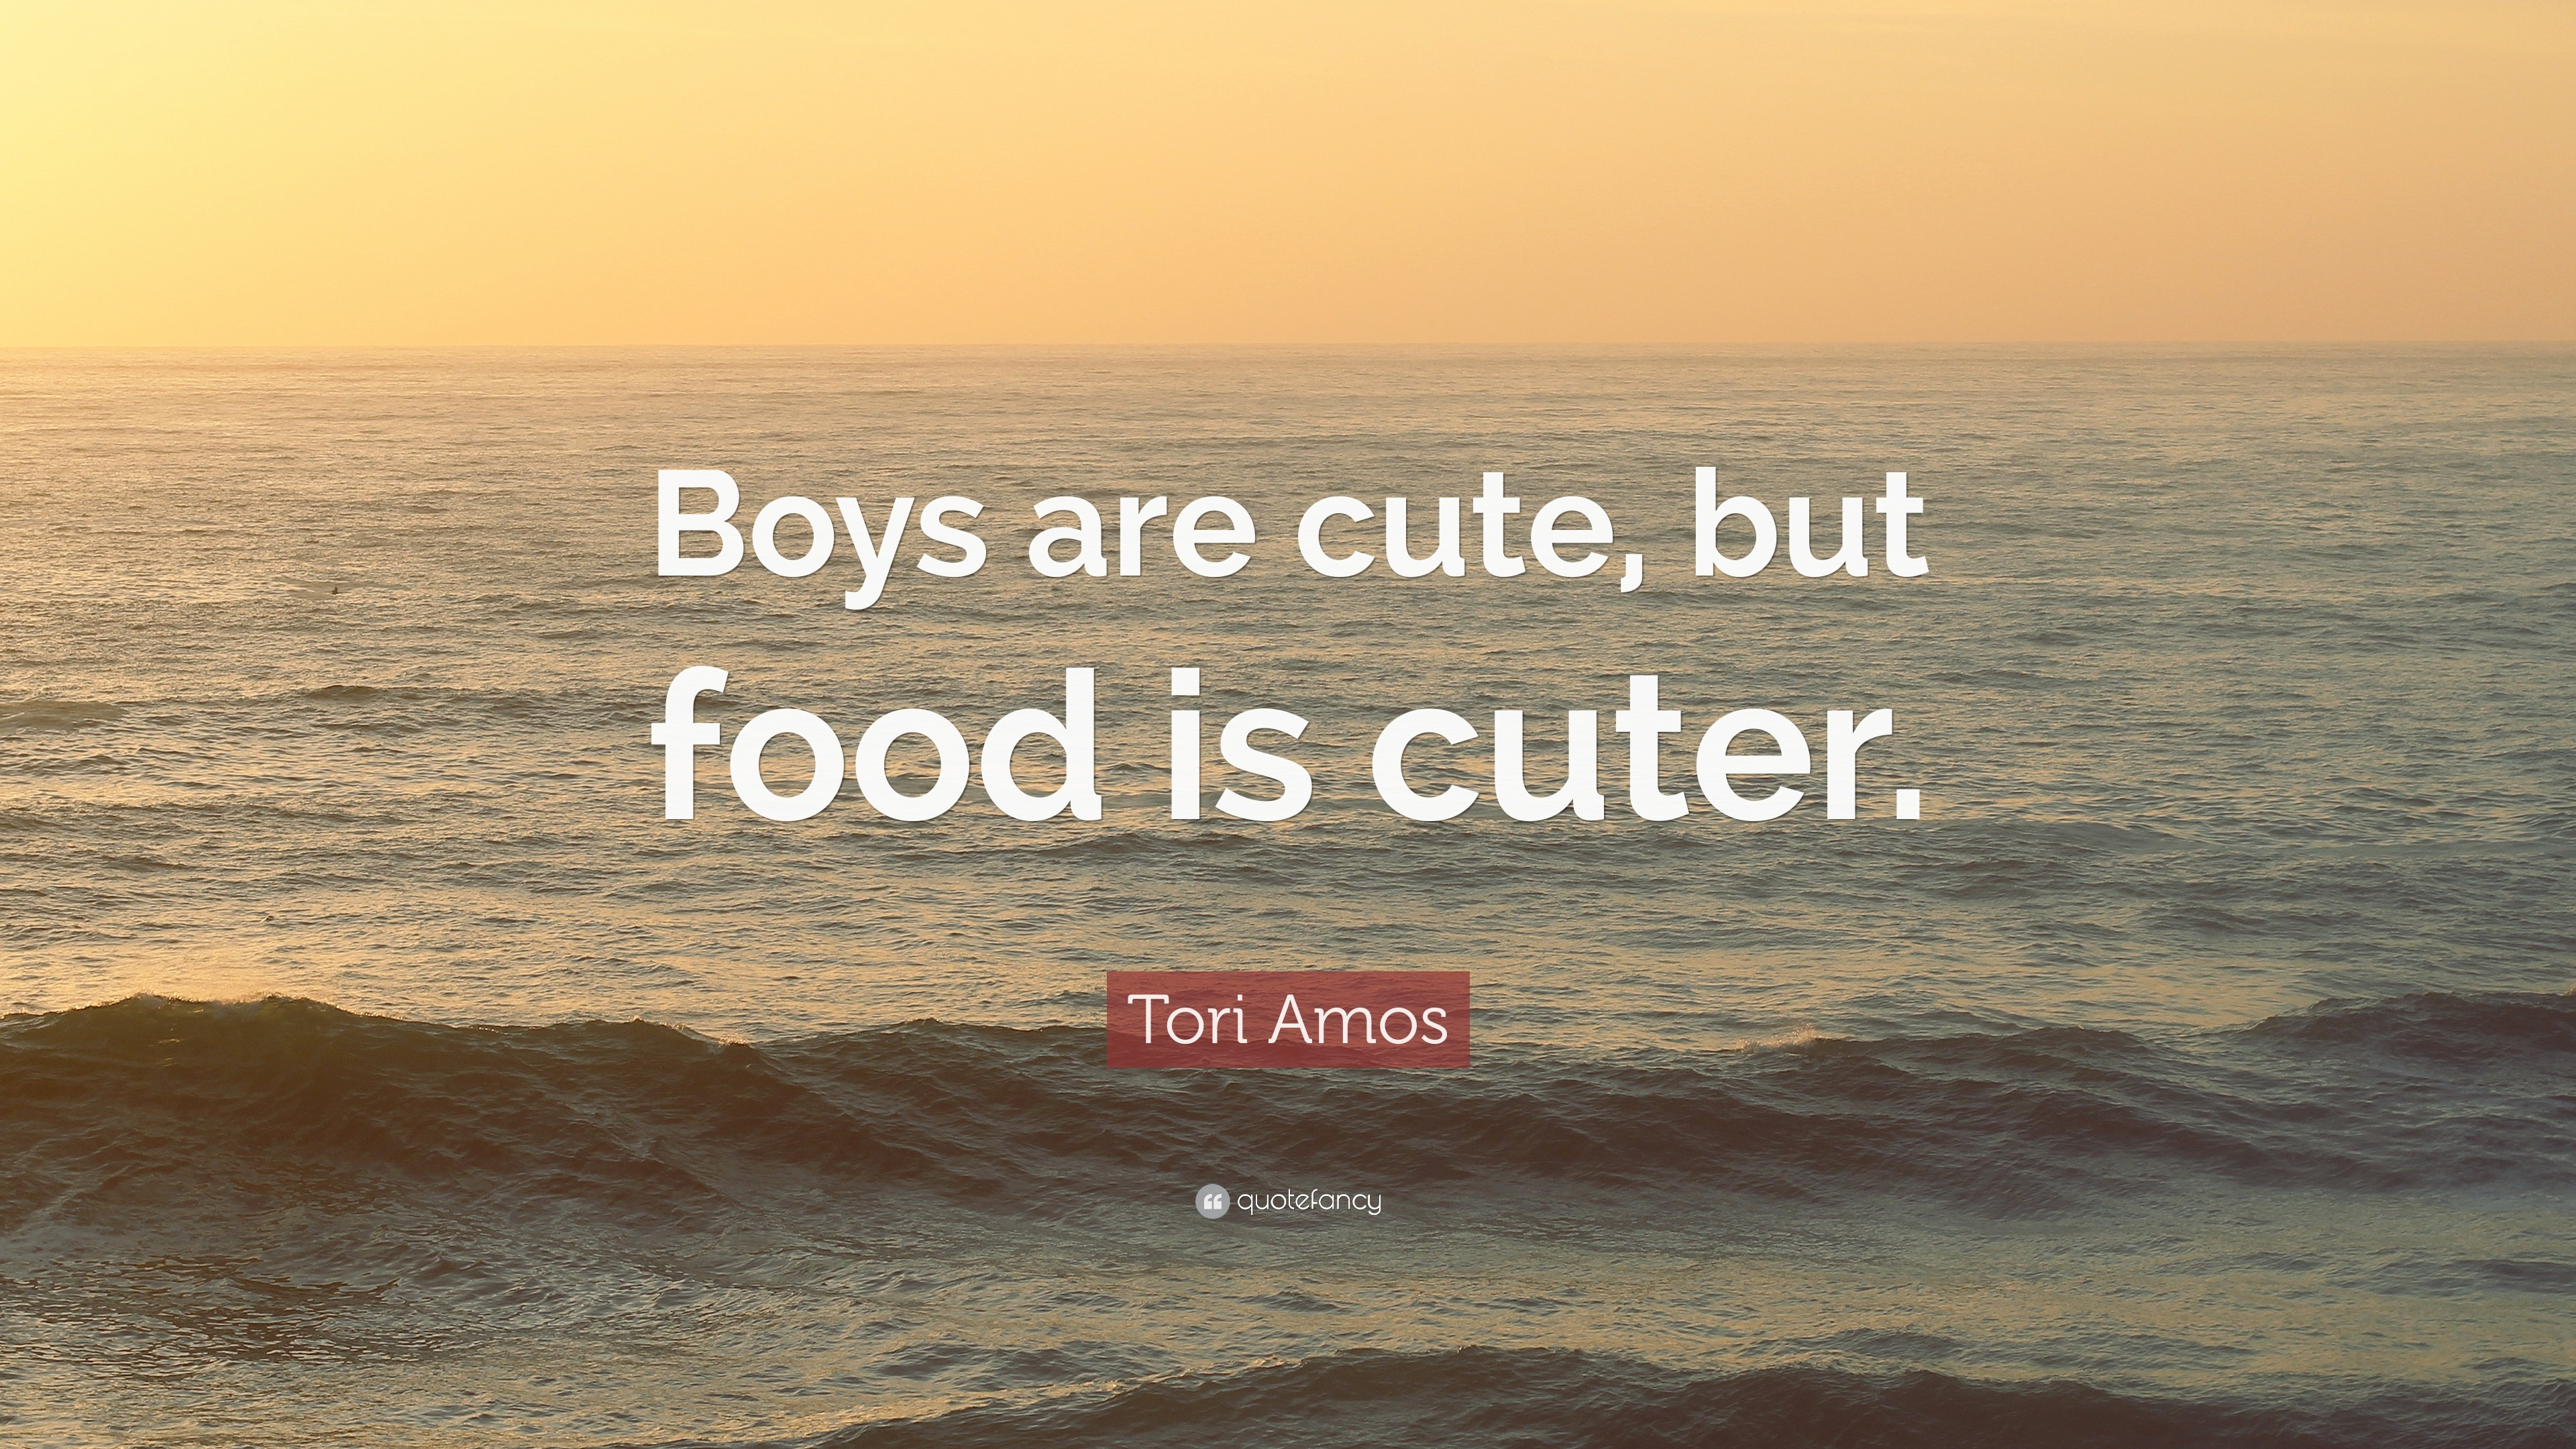 """Res: 3840x2160, Tori Amos Quote: """"Boys are cute, but food is cuter."""""""